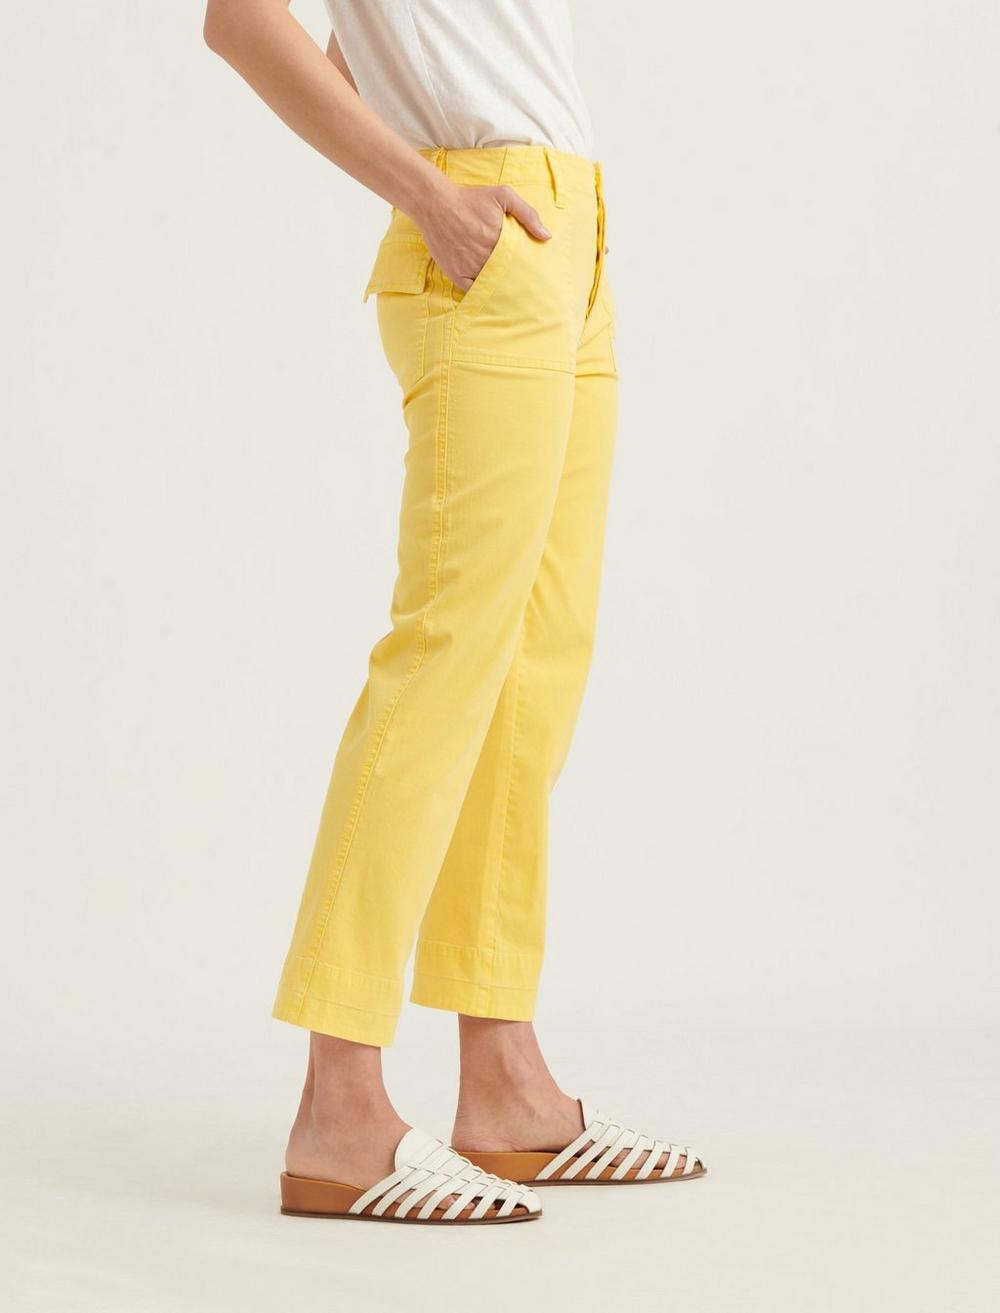 MID RISE UTILITY STRAIGHT PANT, image 2